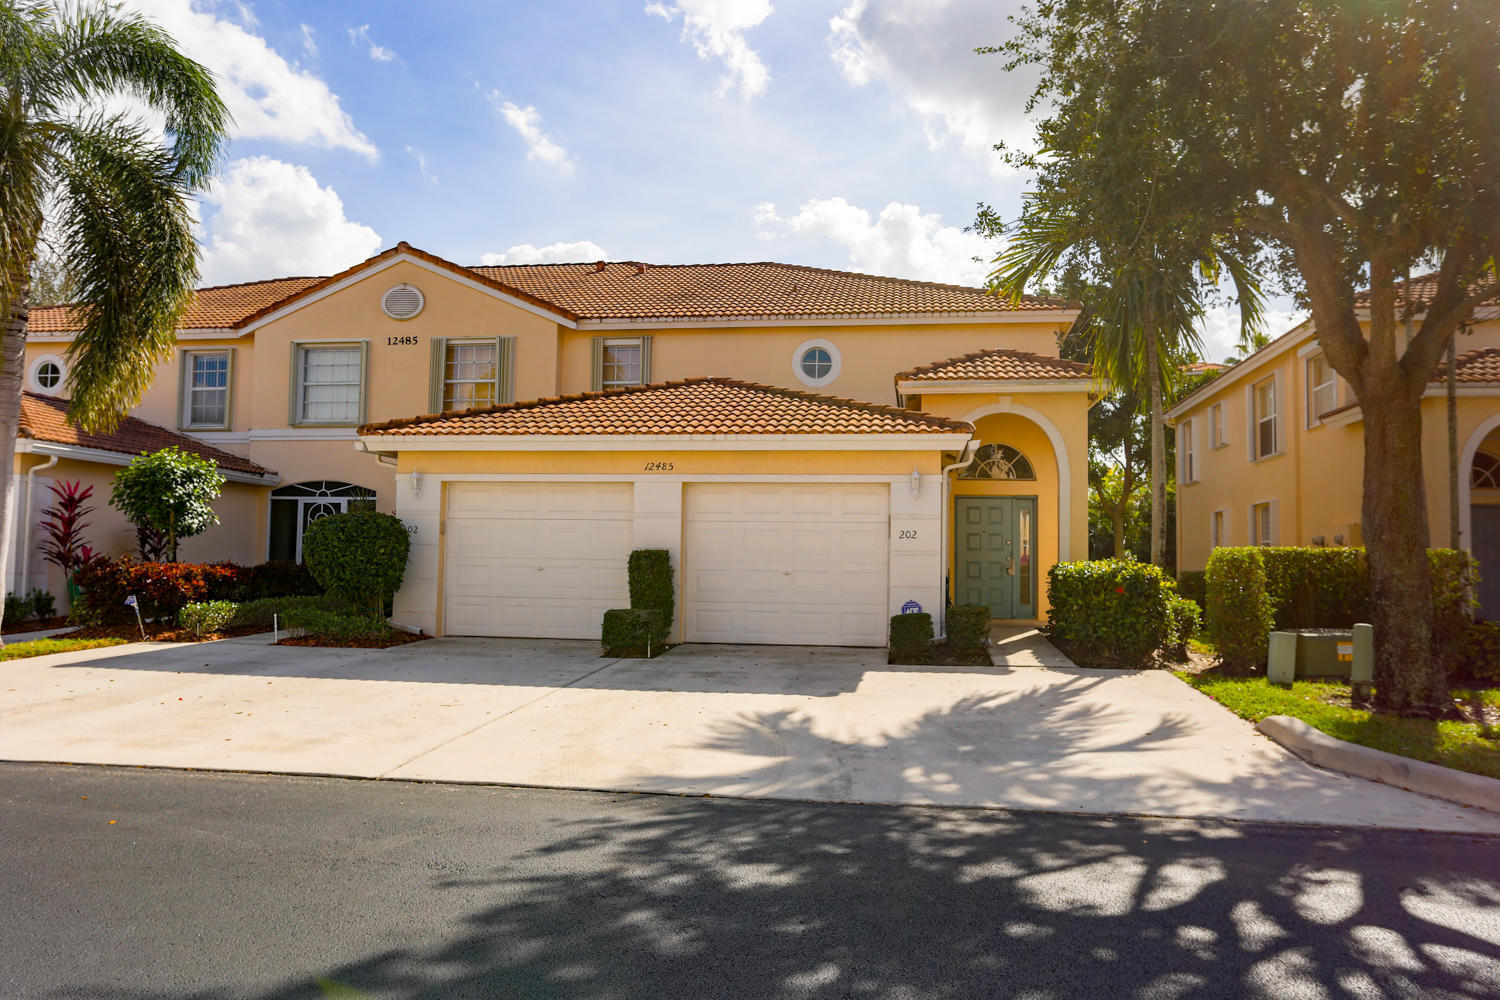 10899 Palm Lake Ave Boynton Beach 33437 - photo